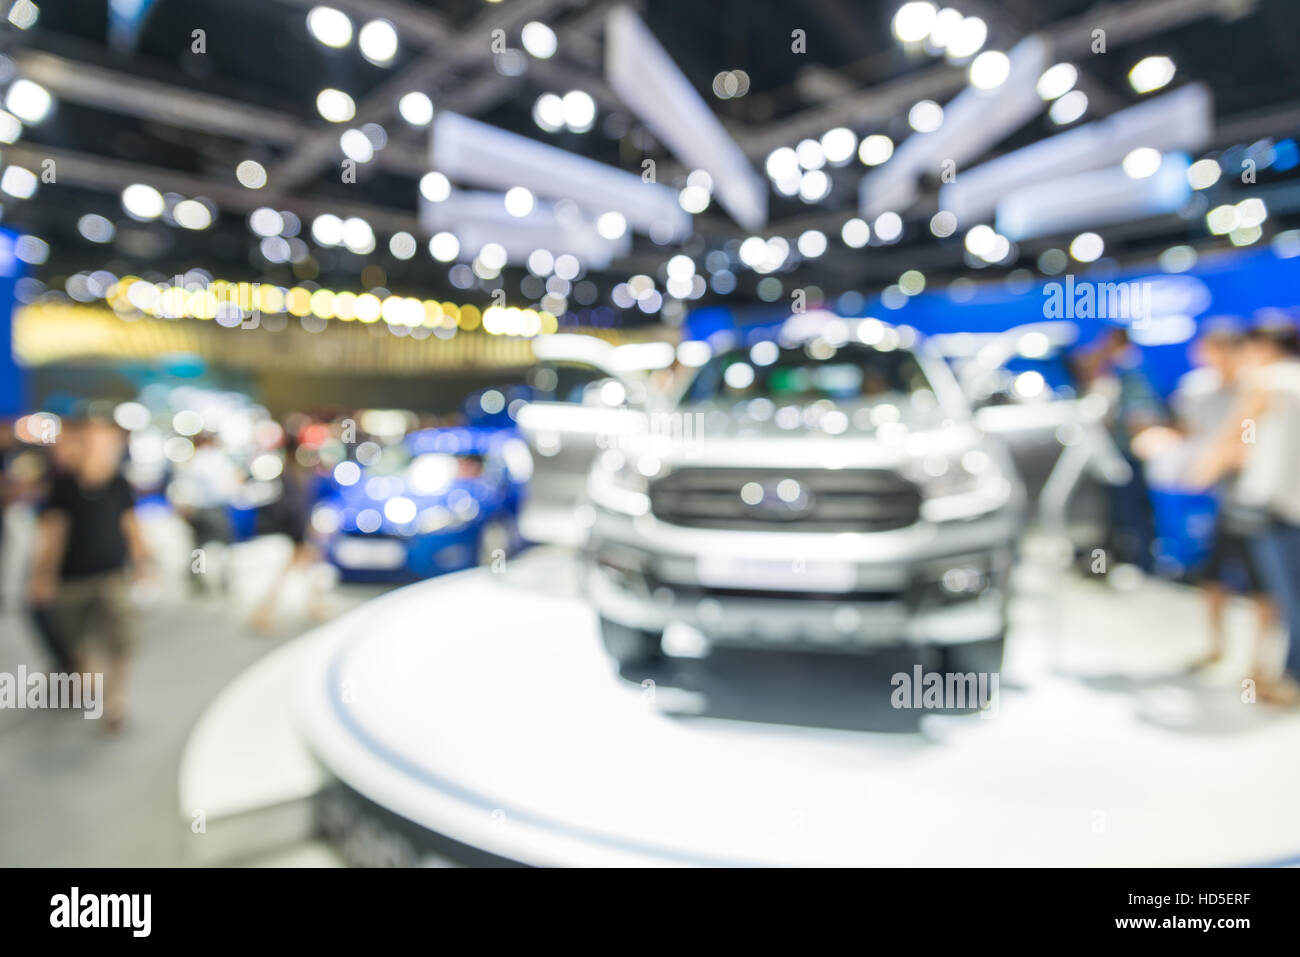 Blurred background of new car displayed in showroom. Car dealer. - Stock Image